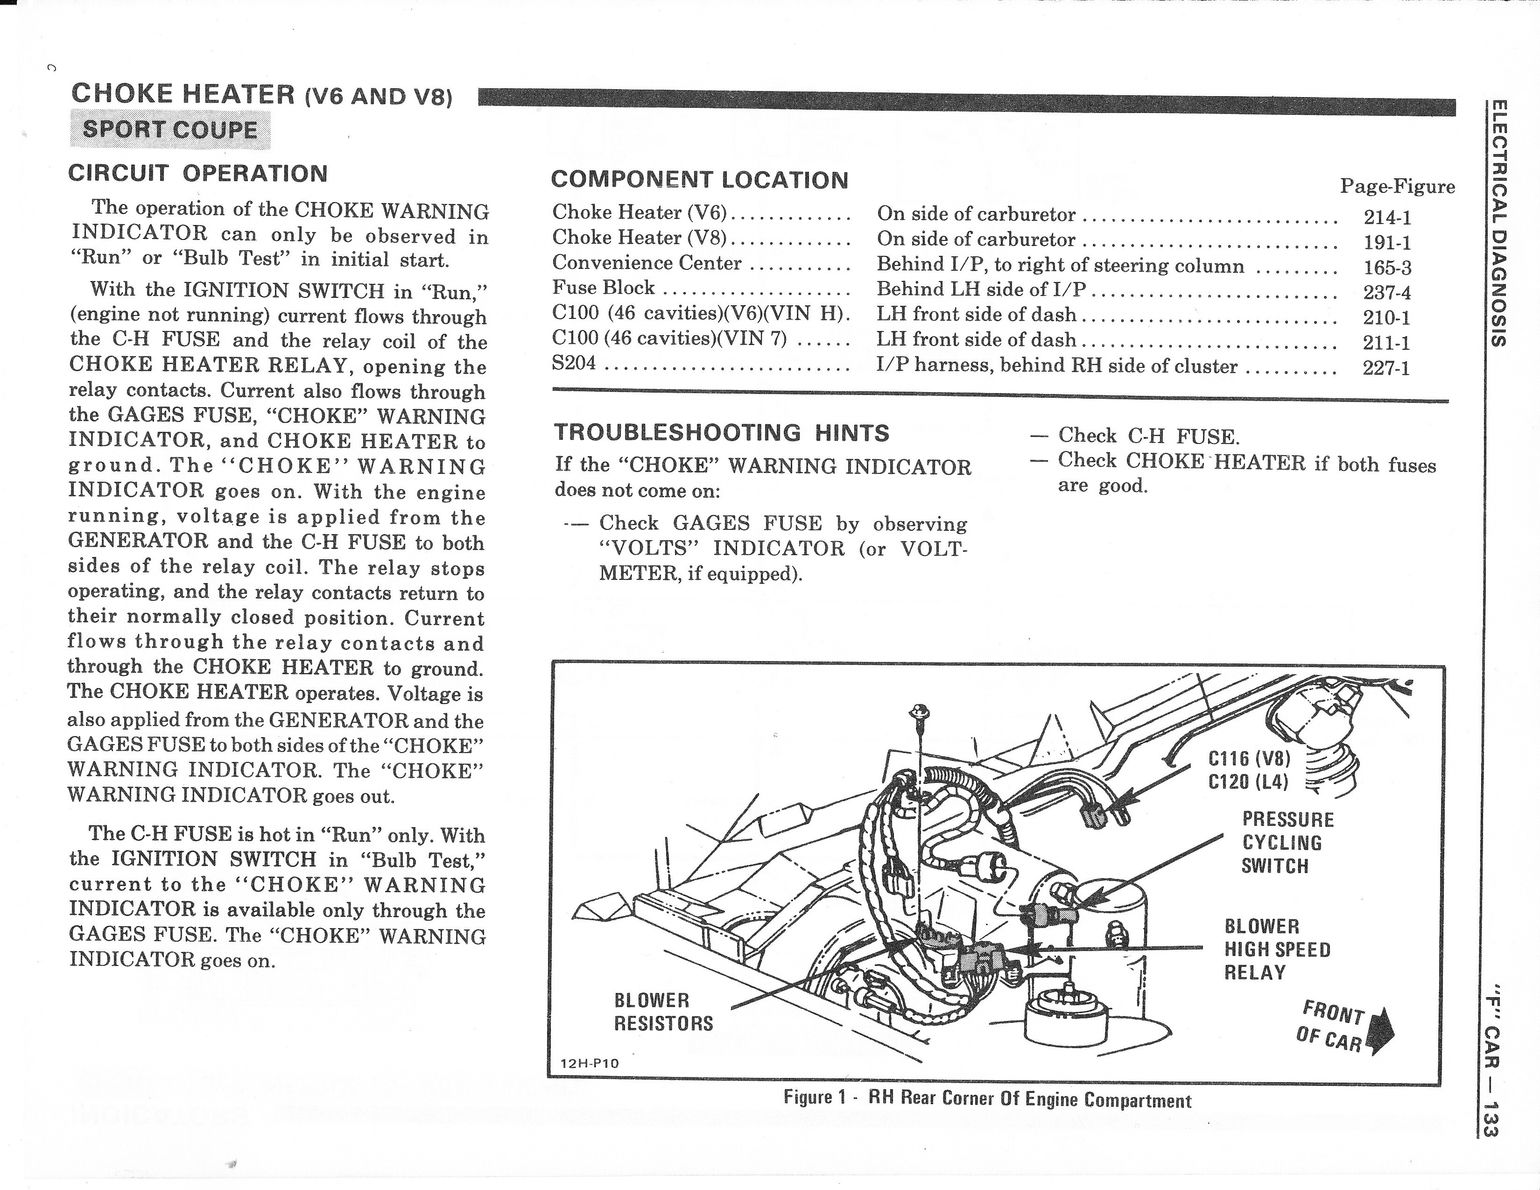 hight resolution of 1998 mcneilus wiring diagram residential electrical symbols u2022 john deere wiring schematic mcneilus wiring schematic